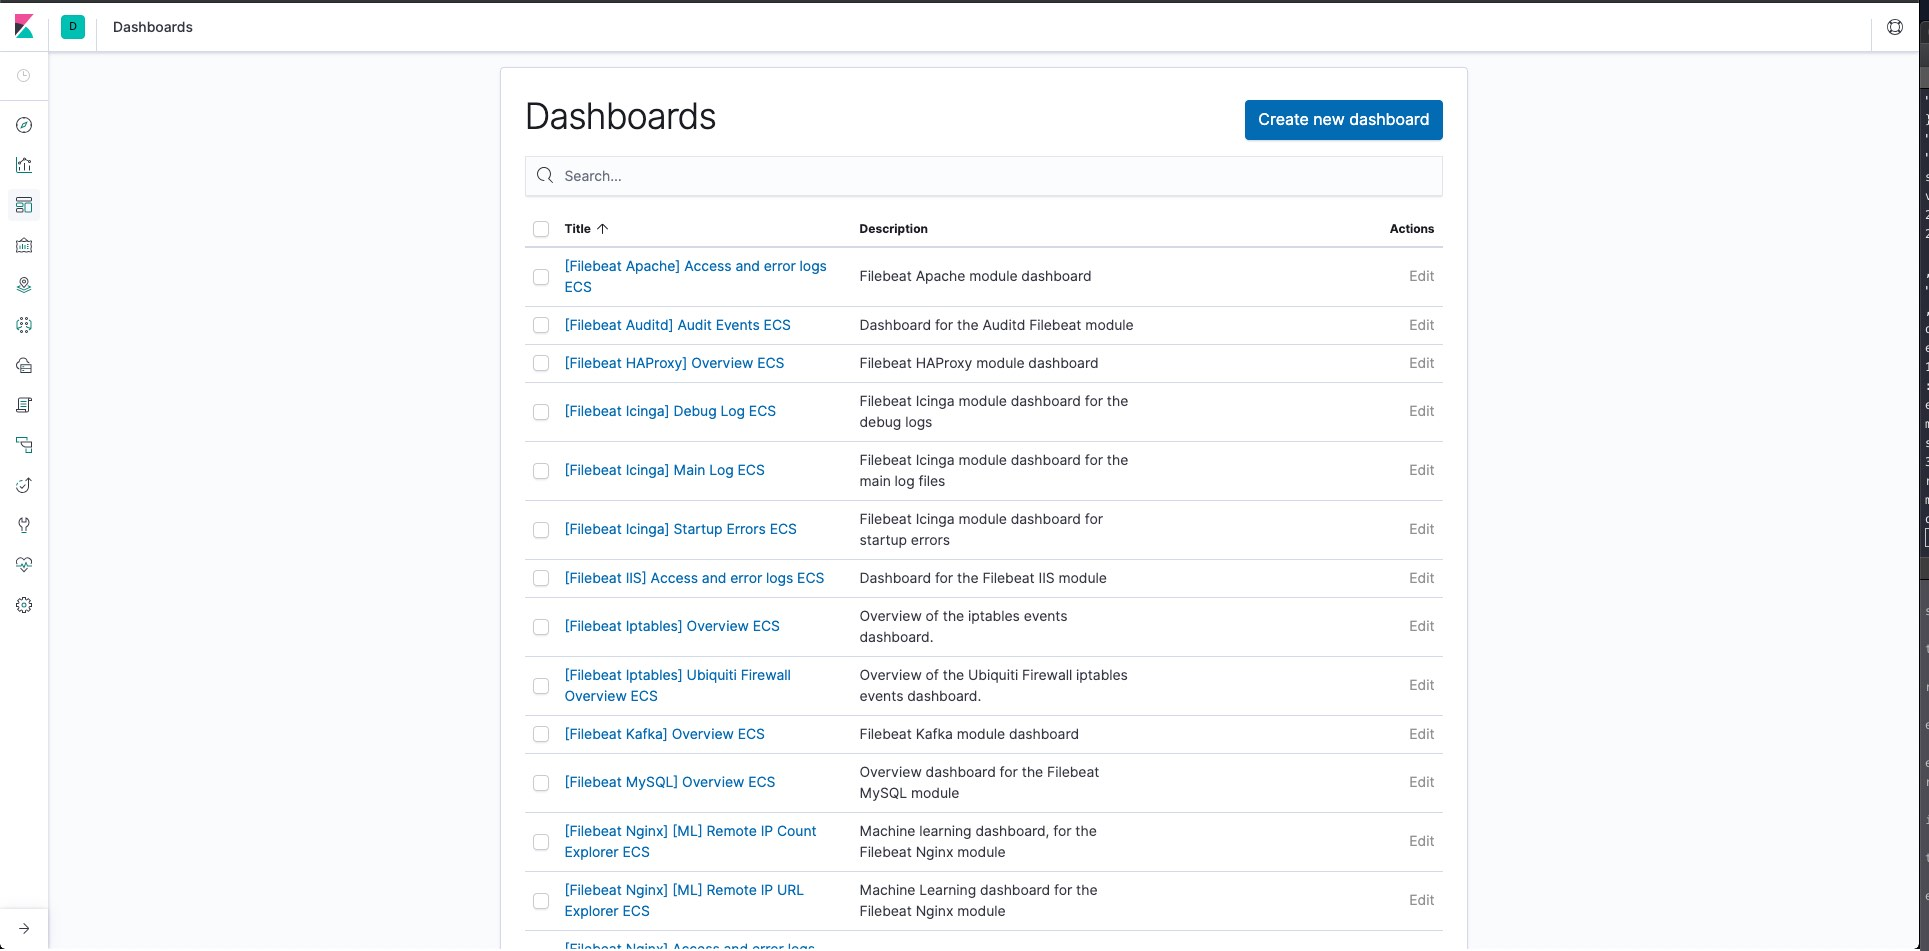 Página de Kibana con los dashboards disponibles